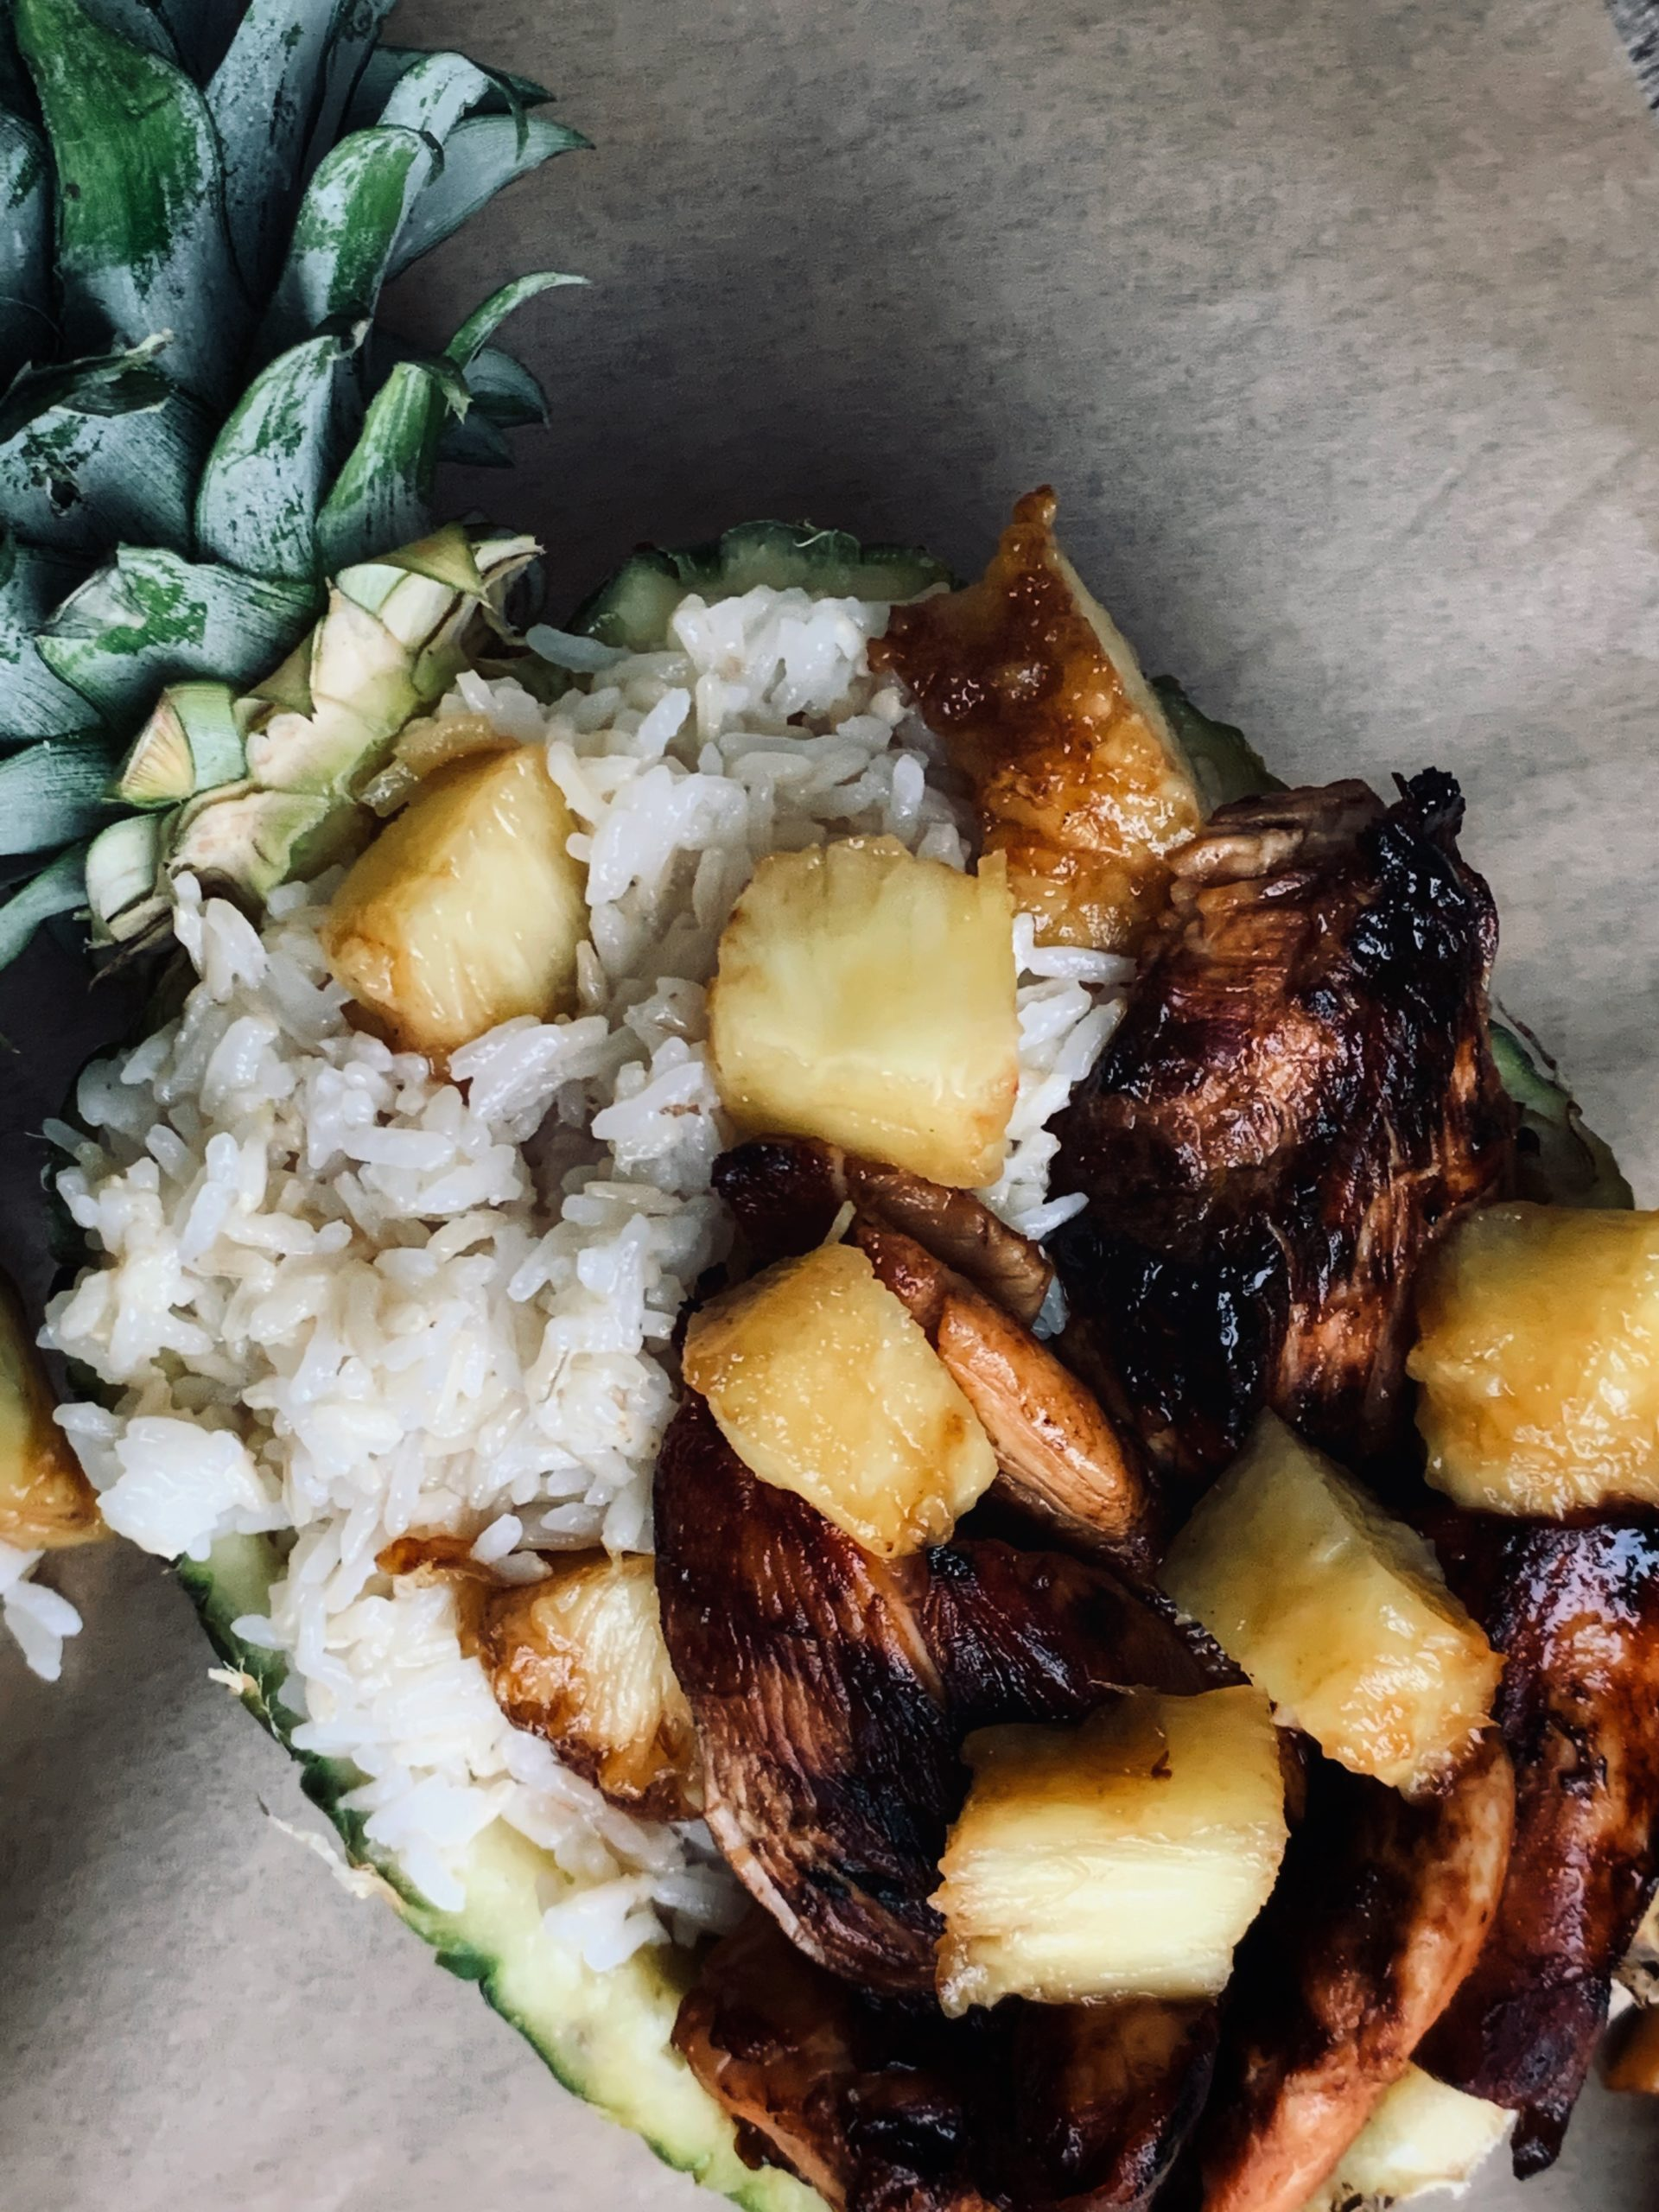 coconut rice and chicken in pineapple